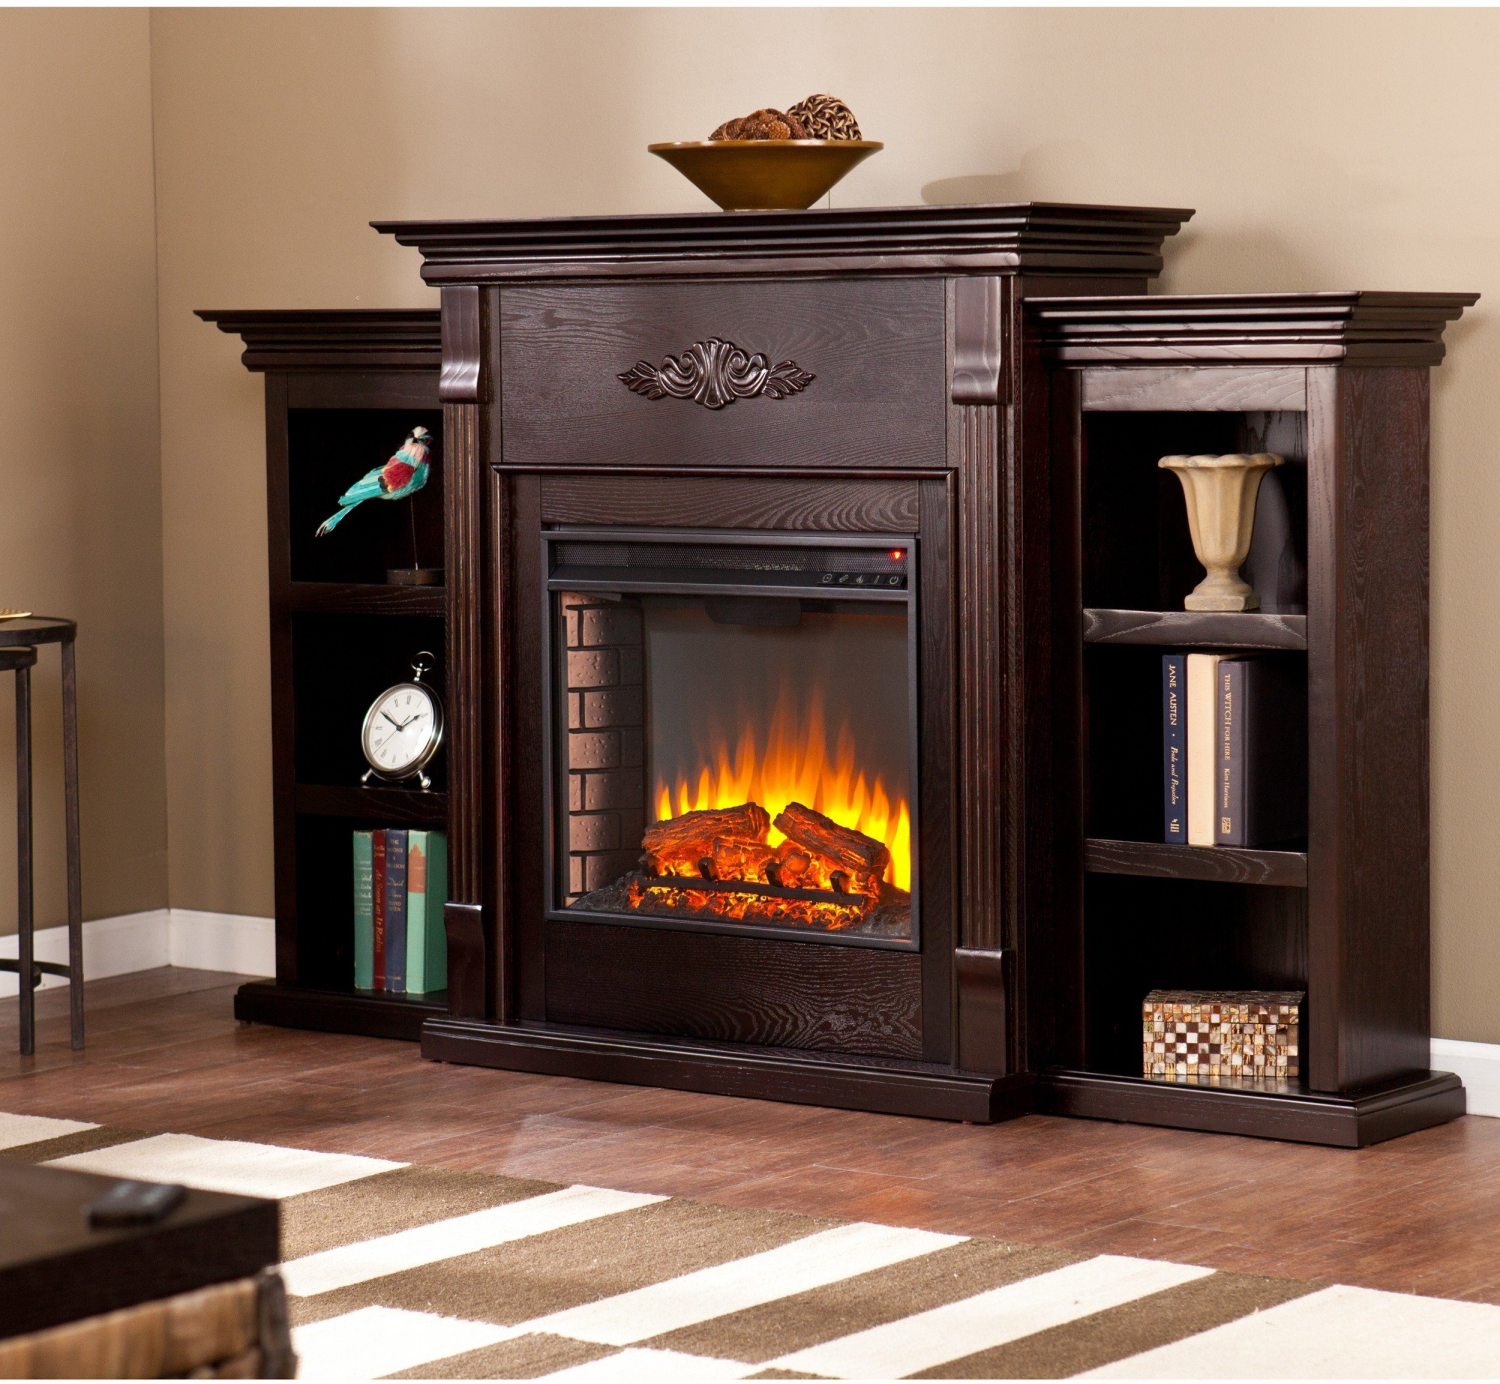 Details About Espresso Electric Fireplace Wood Tv Stand Bookcase Shelf Remote Control Heater